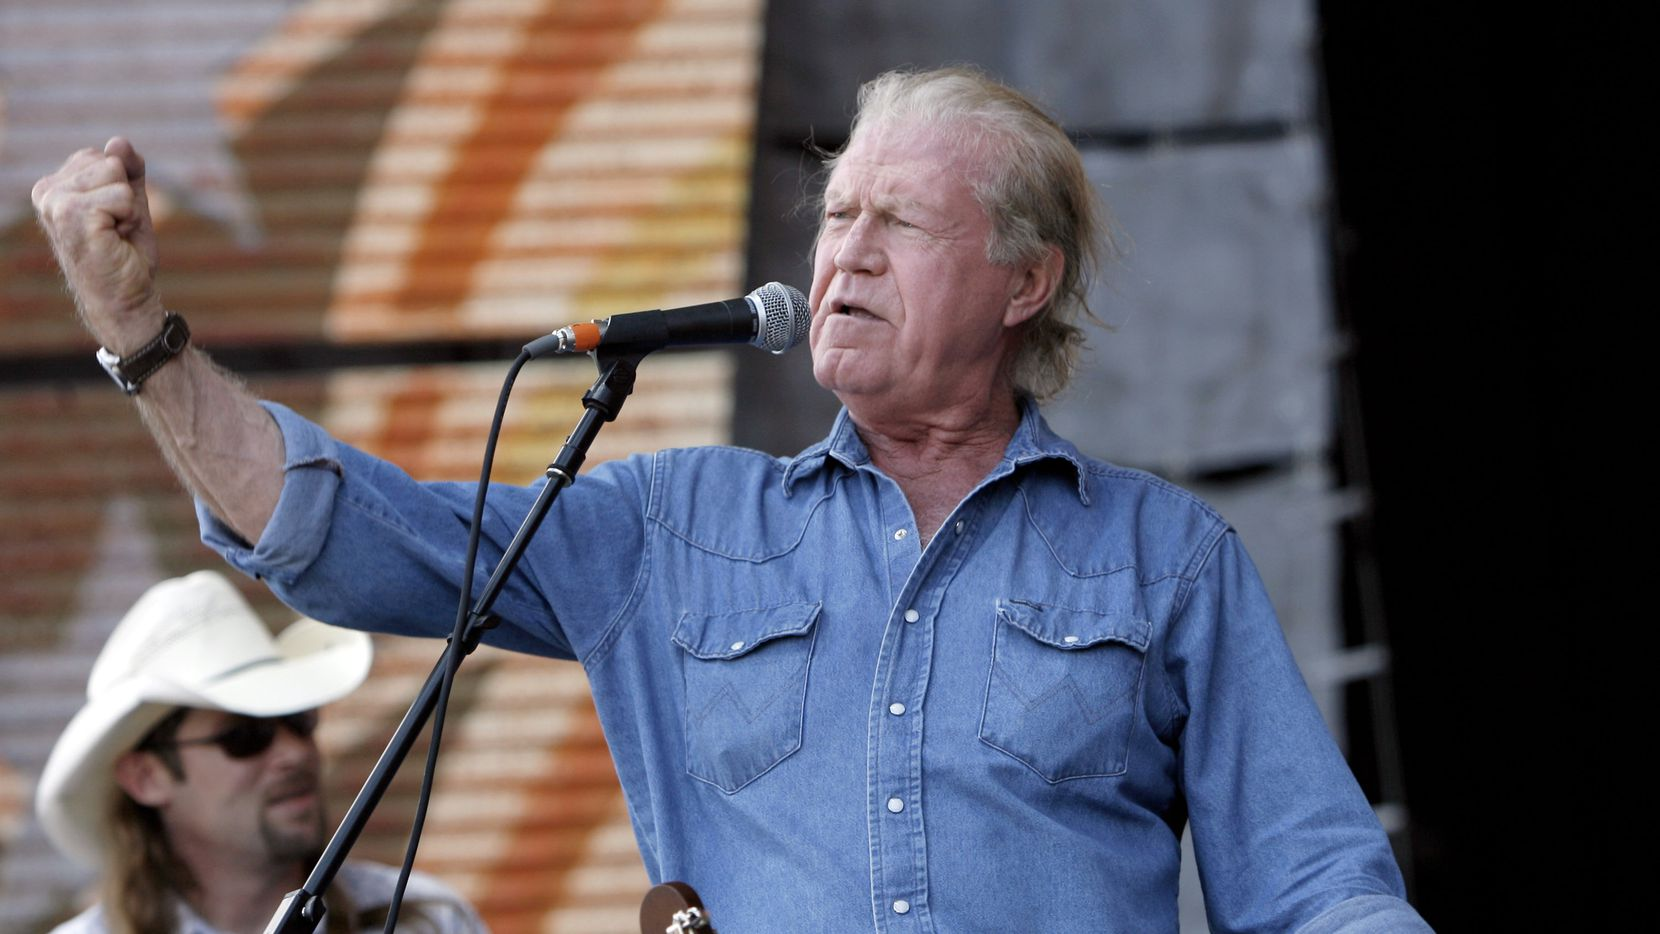 Billy Joe Shaver performs at Farm Aid on Randall's Island in New York on Sept. 9, 2007.